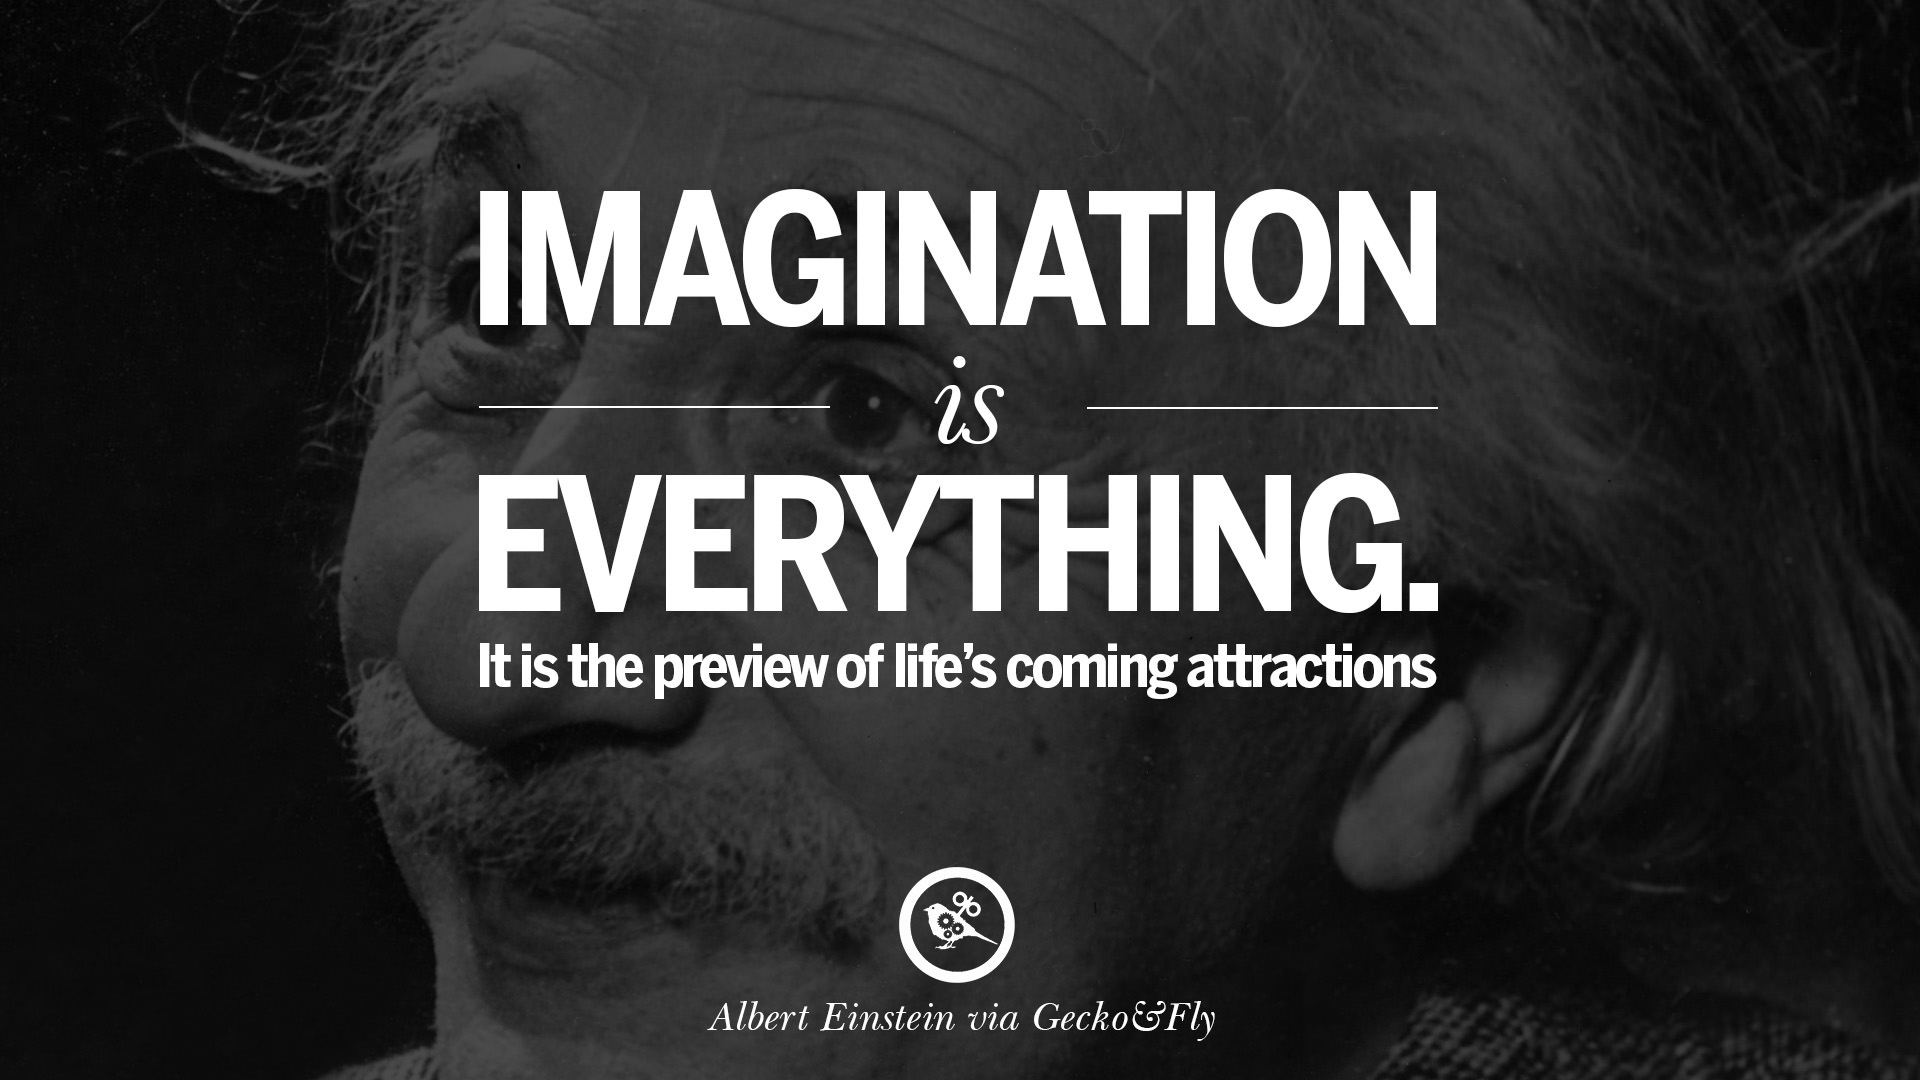 imagination from life